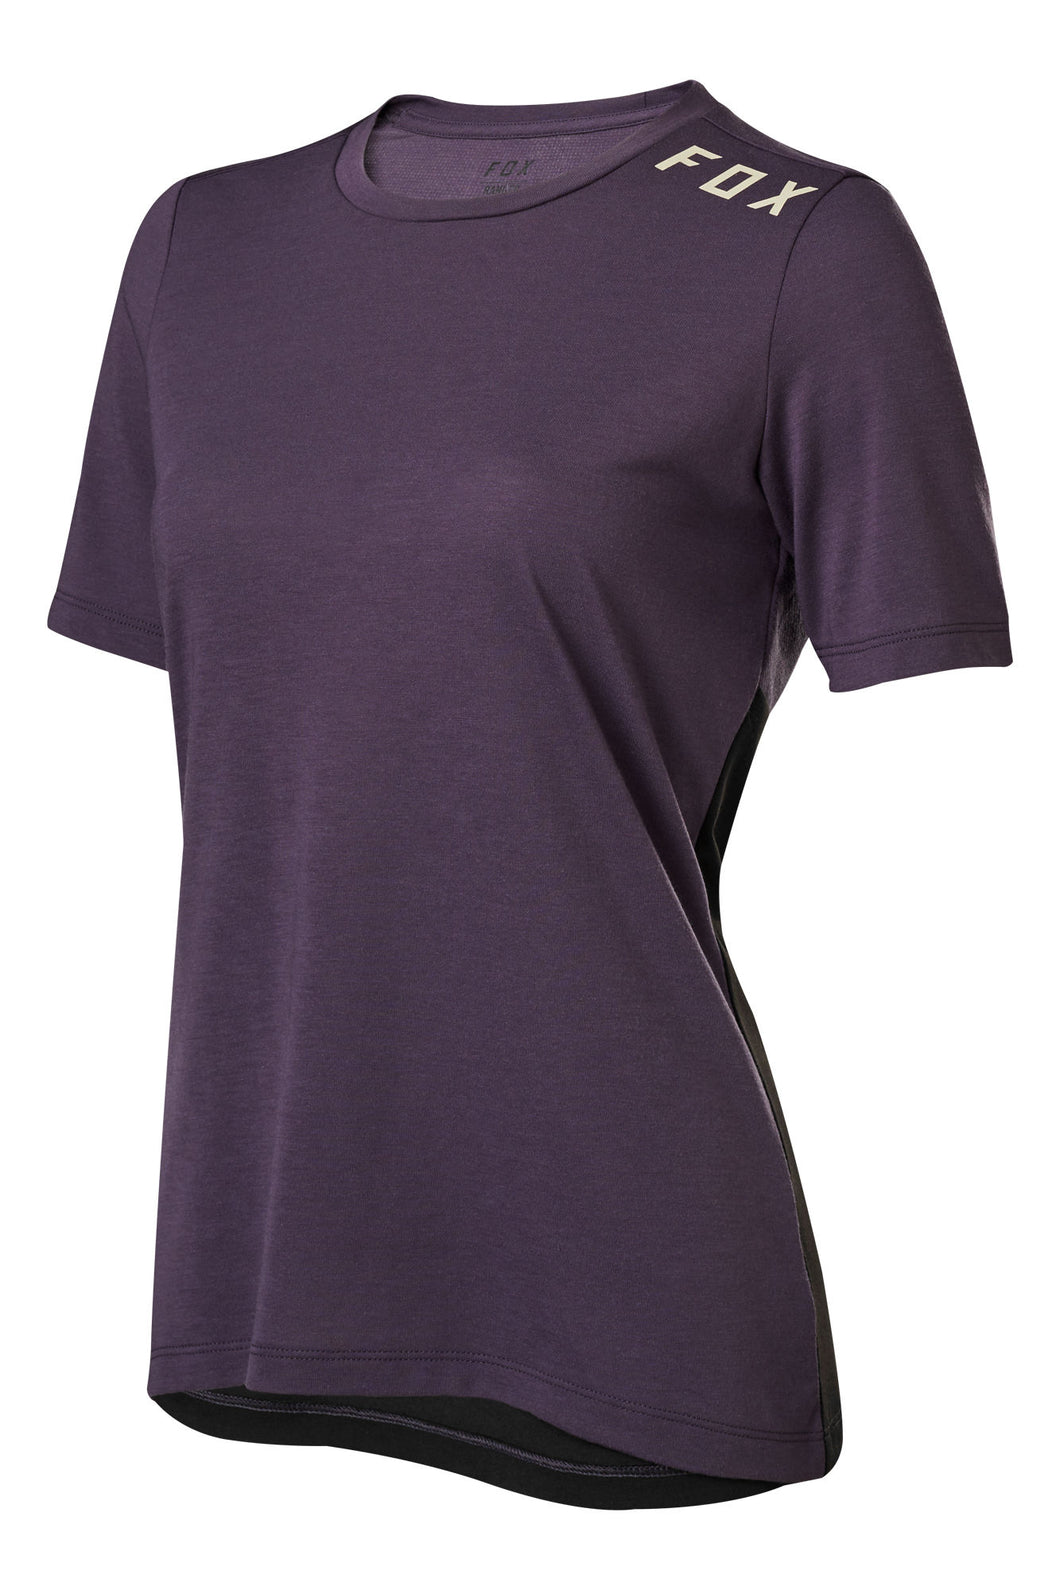 Fox Racing Womans Ranger Dri Release MTB Mountain Biking Jersey Dark Purple Front